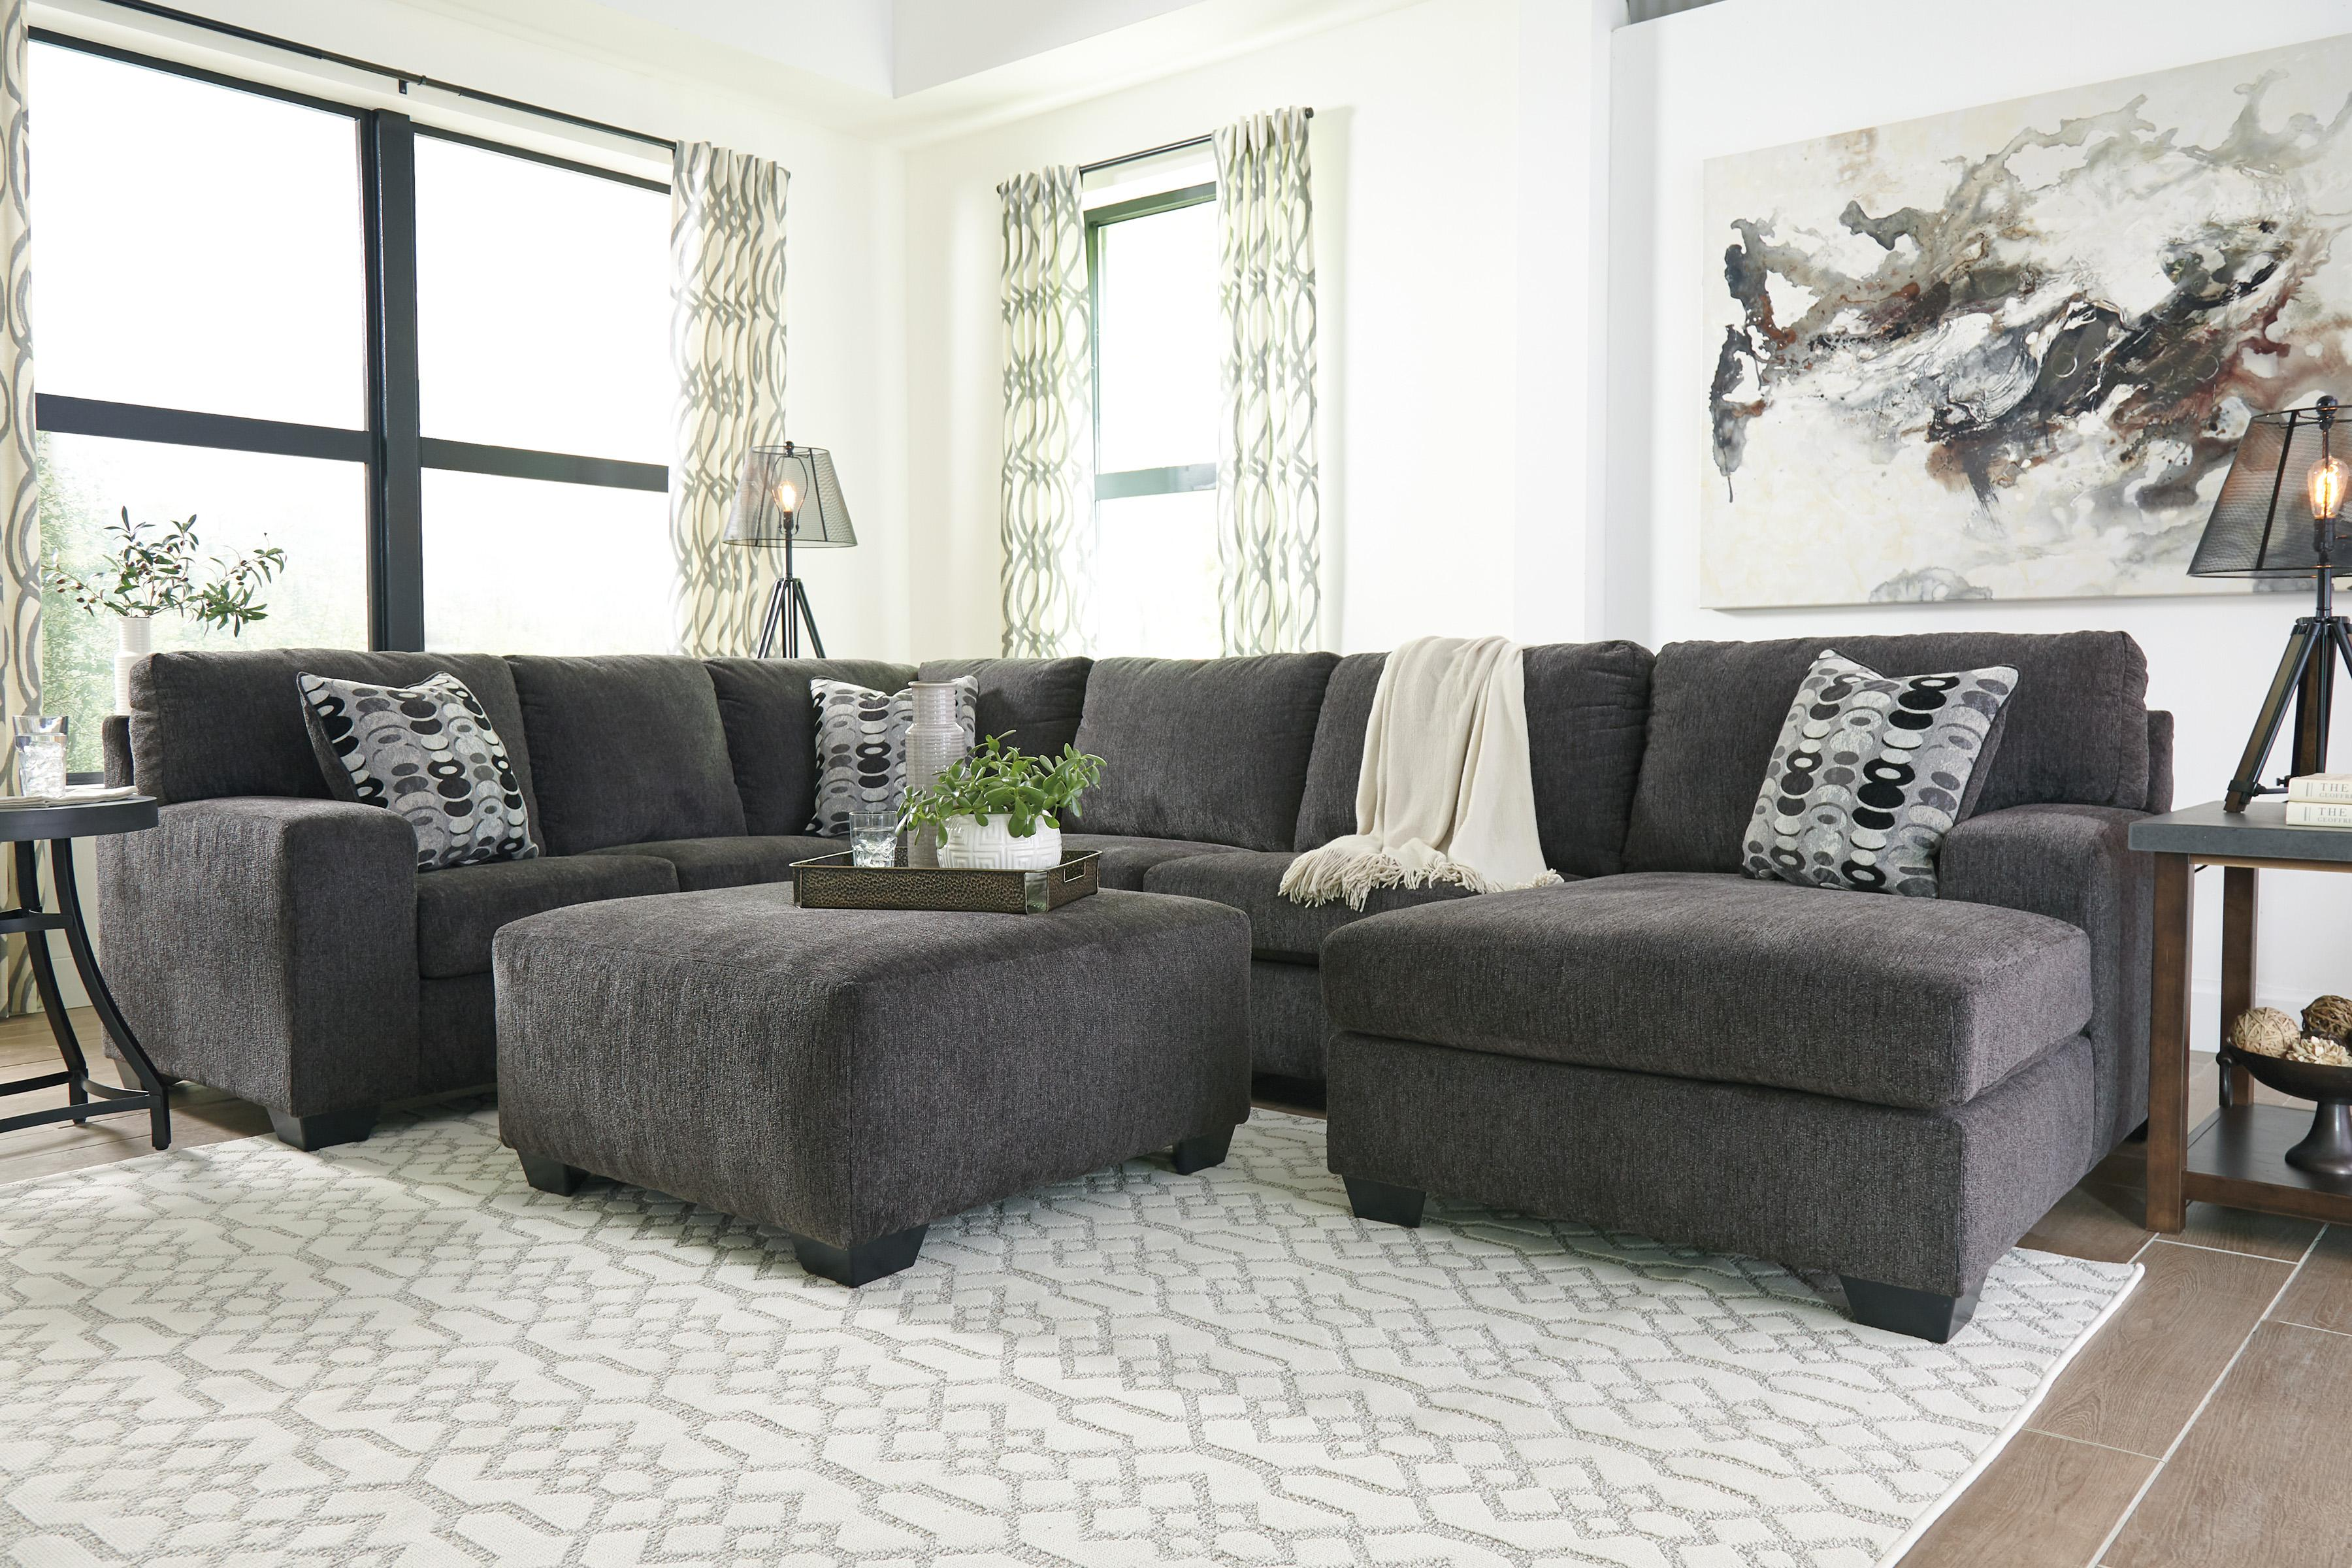 Darcy 7500416/67 Sectional